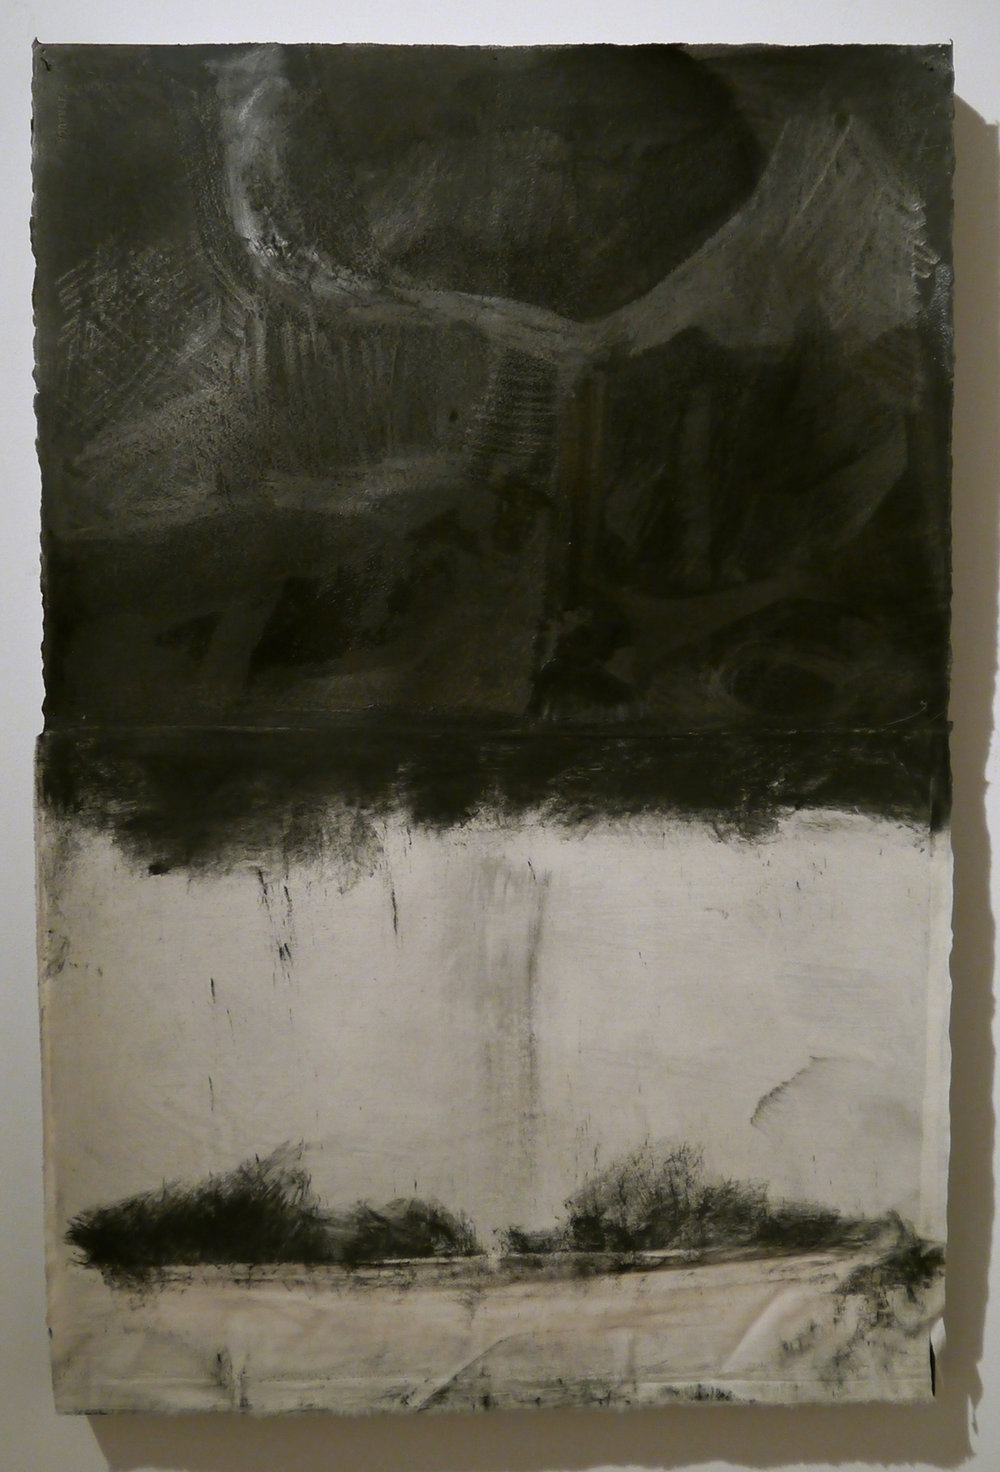 Kathline Carr,  Below,  Graphite, muslin, acrylic on paper, 34x22.5